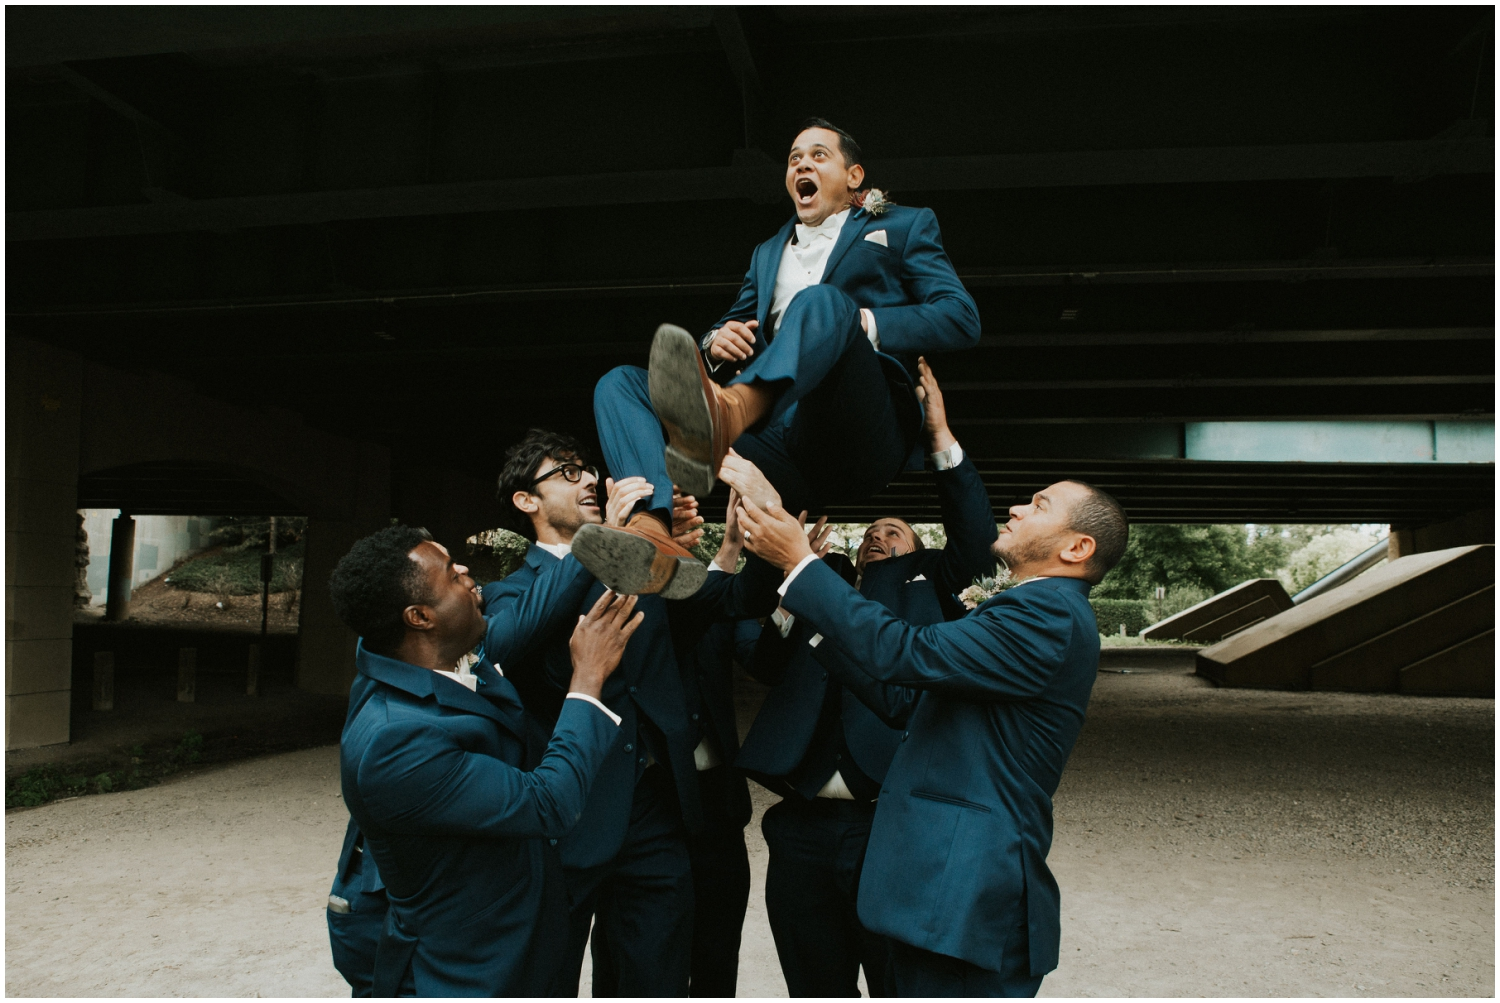 Groomsmen carrying the Groom up in the air